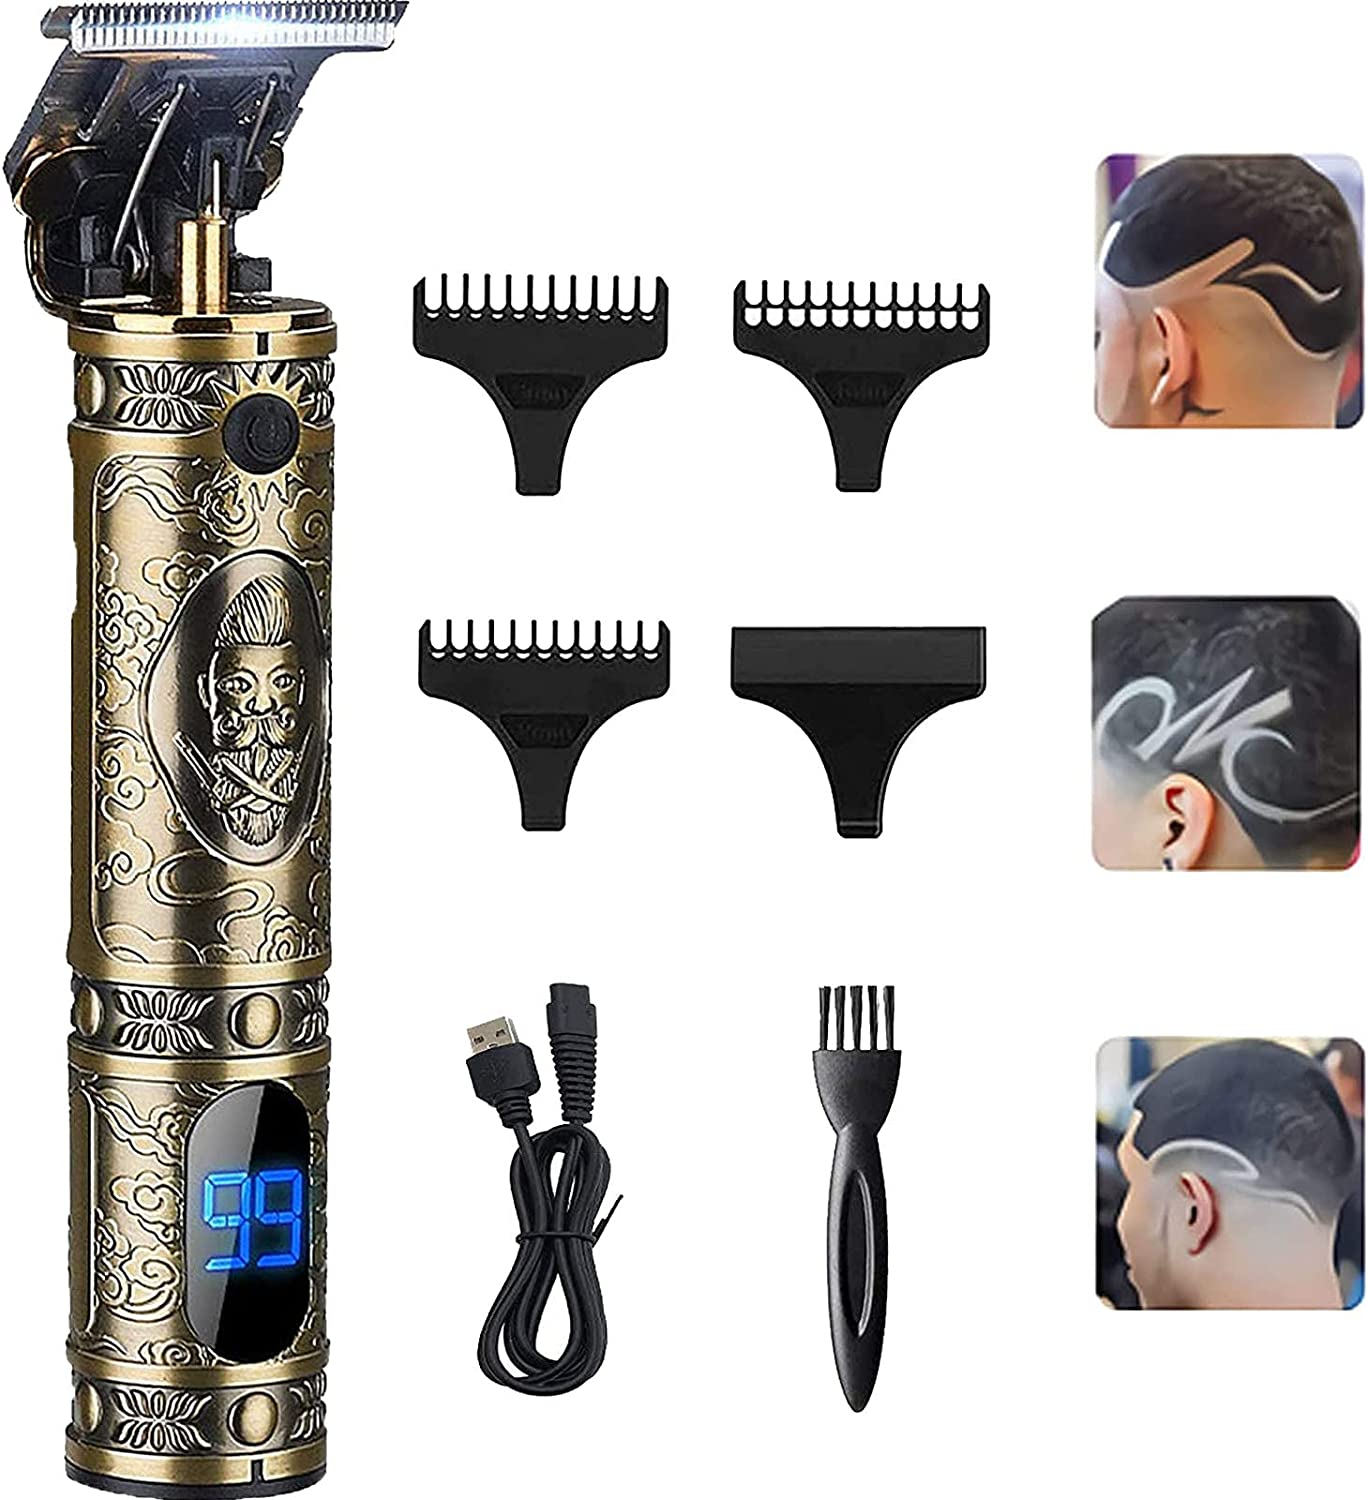 Cordless Daily bargain sale Pro T Outliner Clippers Trimmers NATURALI Gapped High quality new Zero